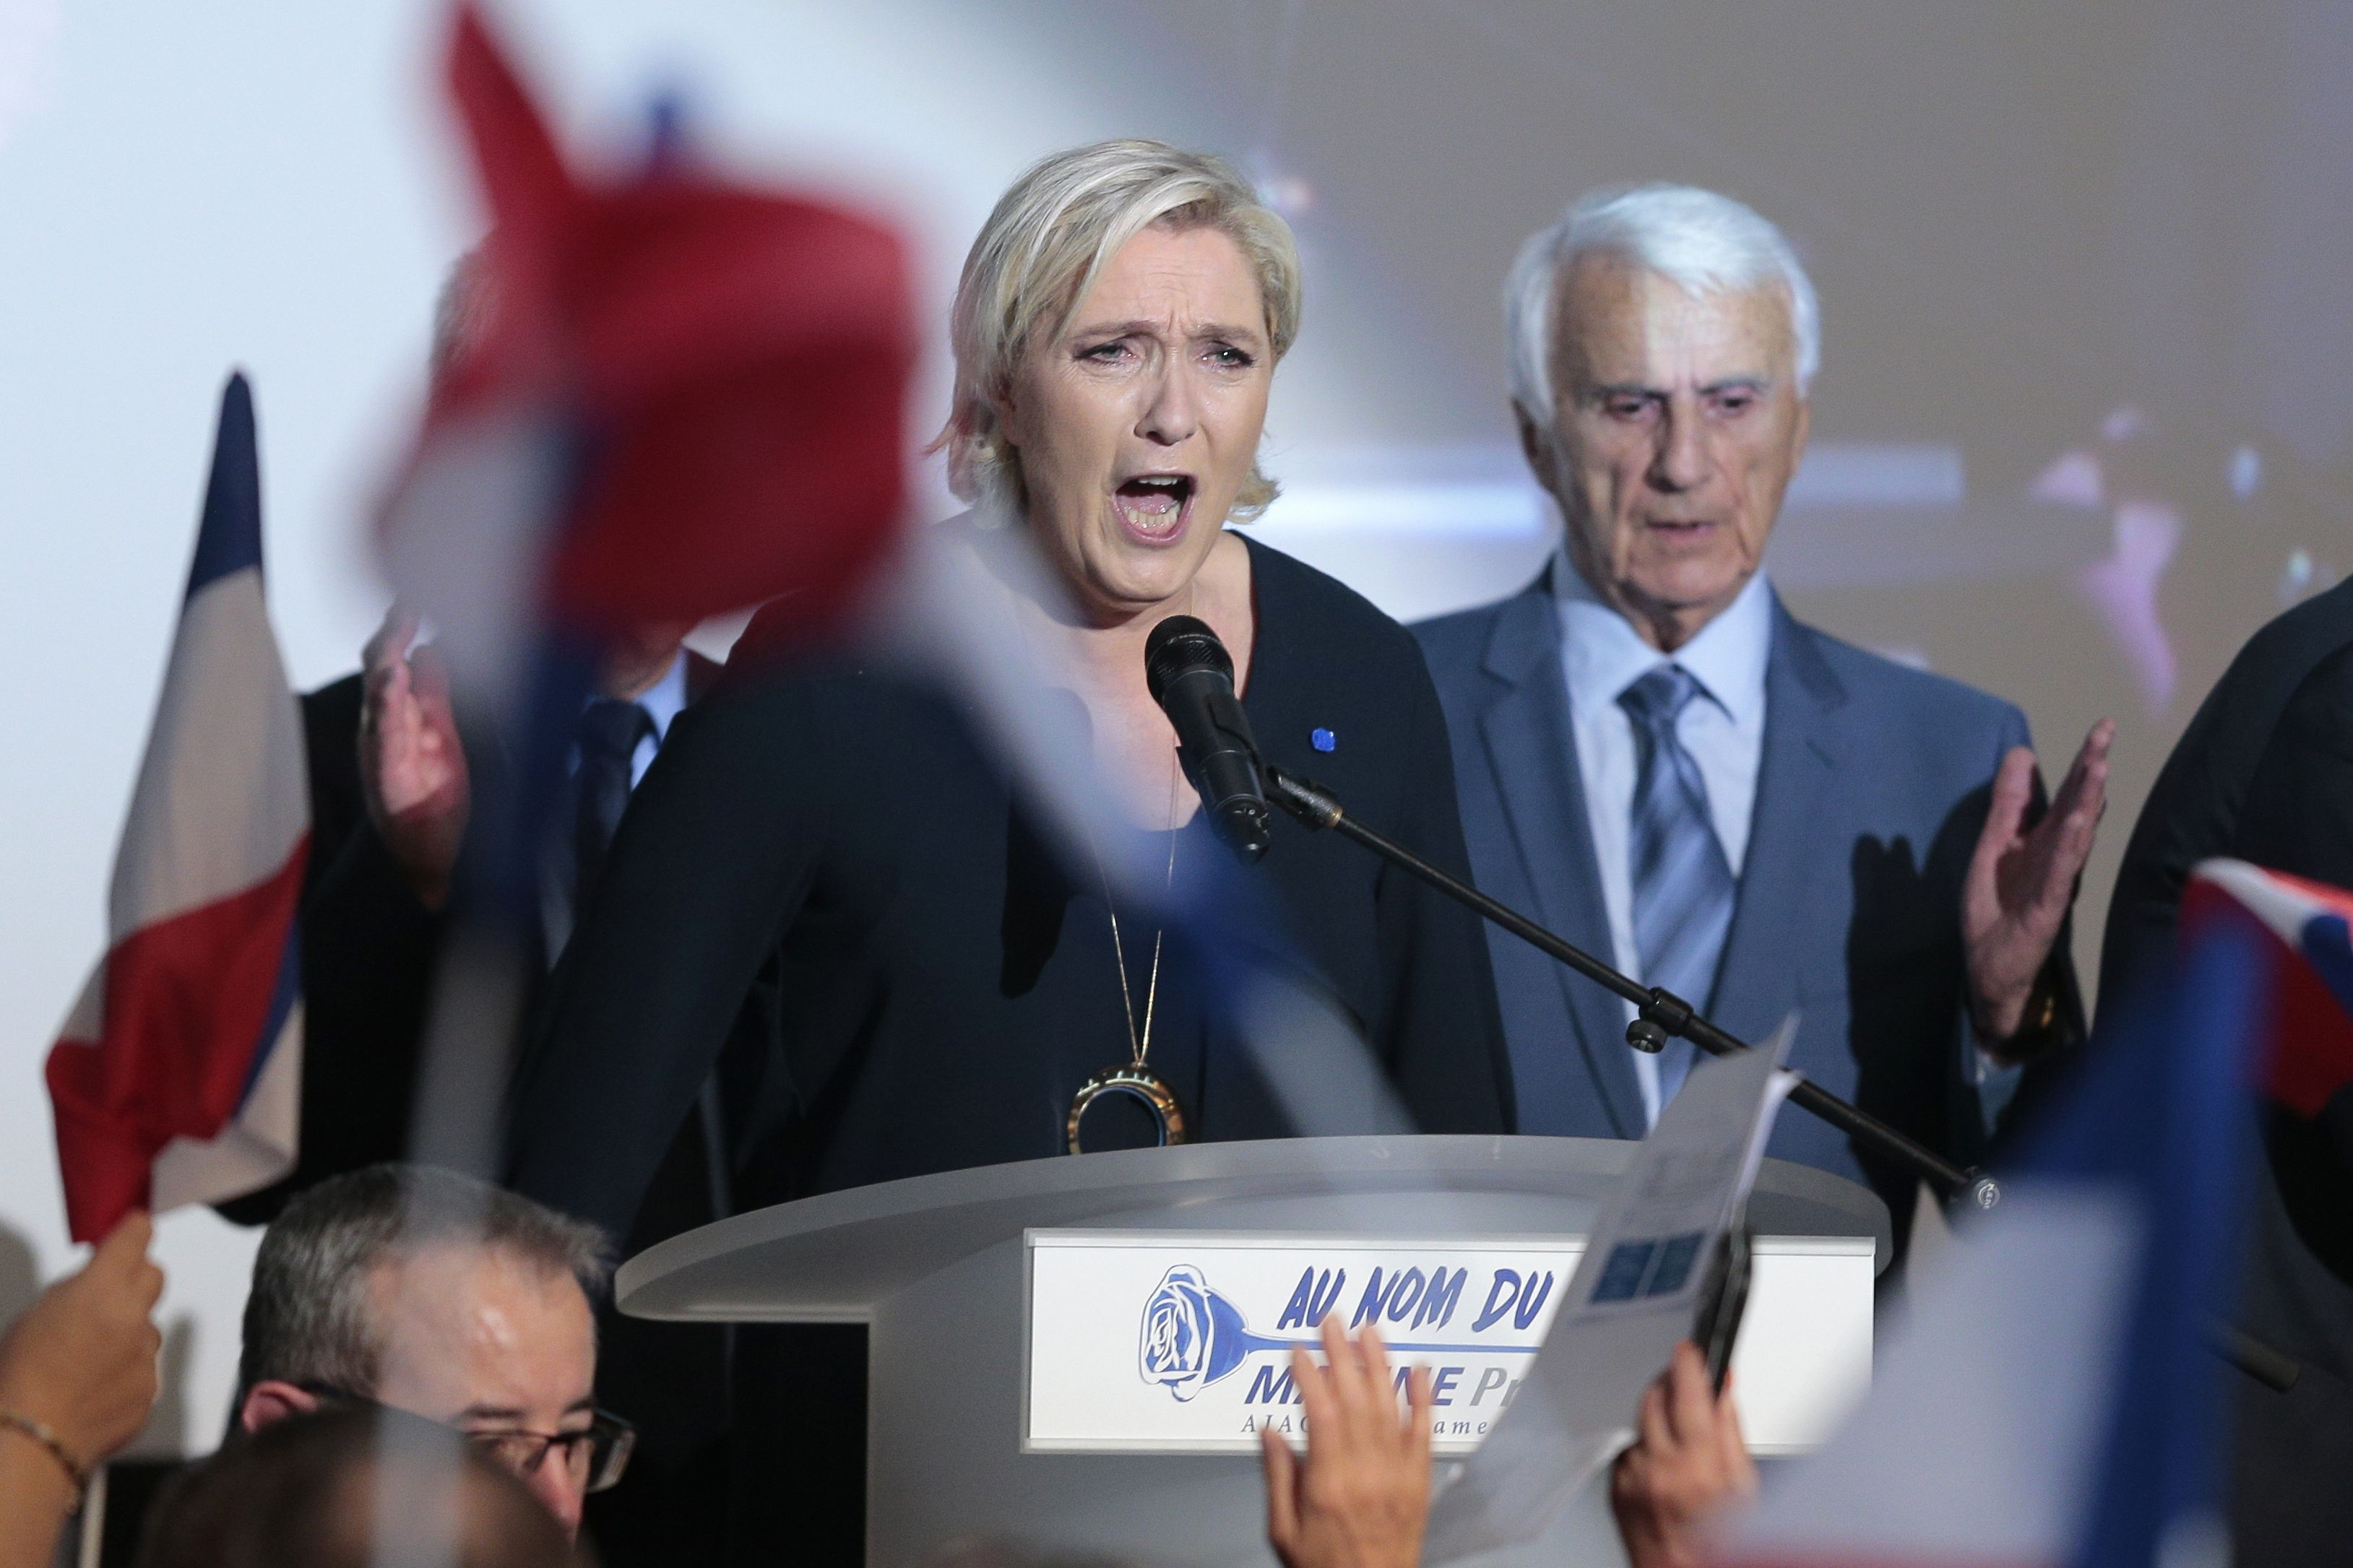 French presidential election candidate for the far-right Front National (FN) party Marine Le Pen delivers a speech during a campaign meeting at the Palais des Congres in Ajaccio on the French Mediterranean island of Corsica, on April 8, 2017.